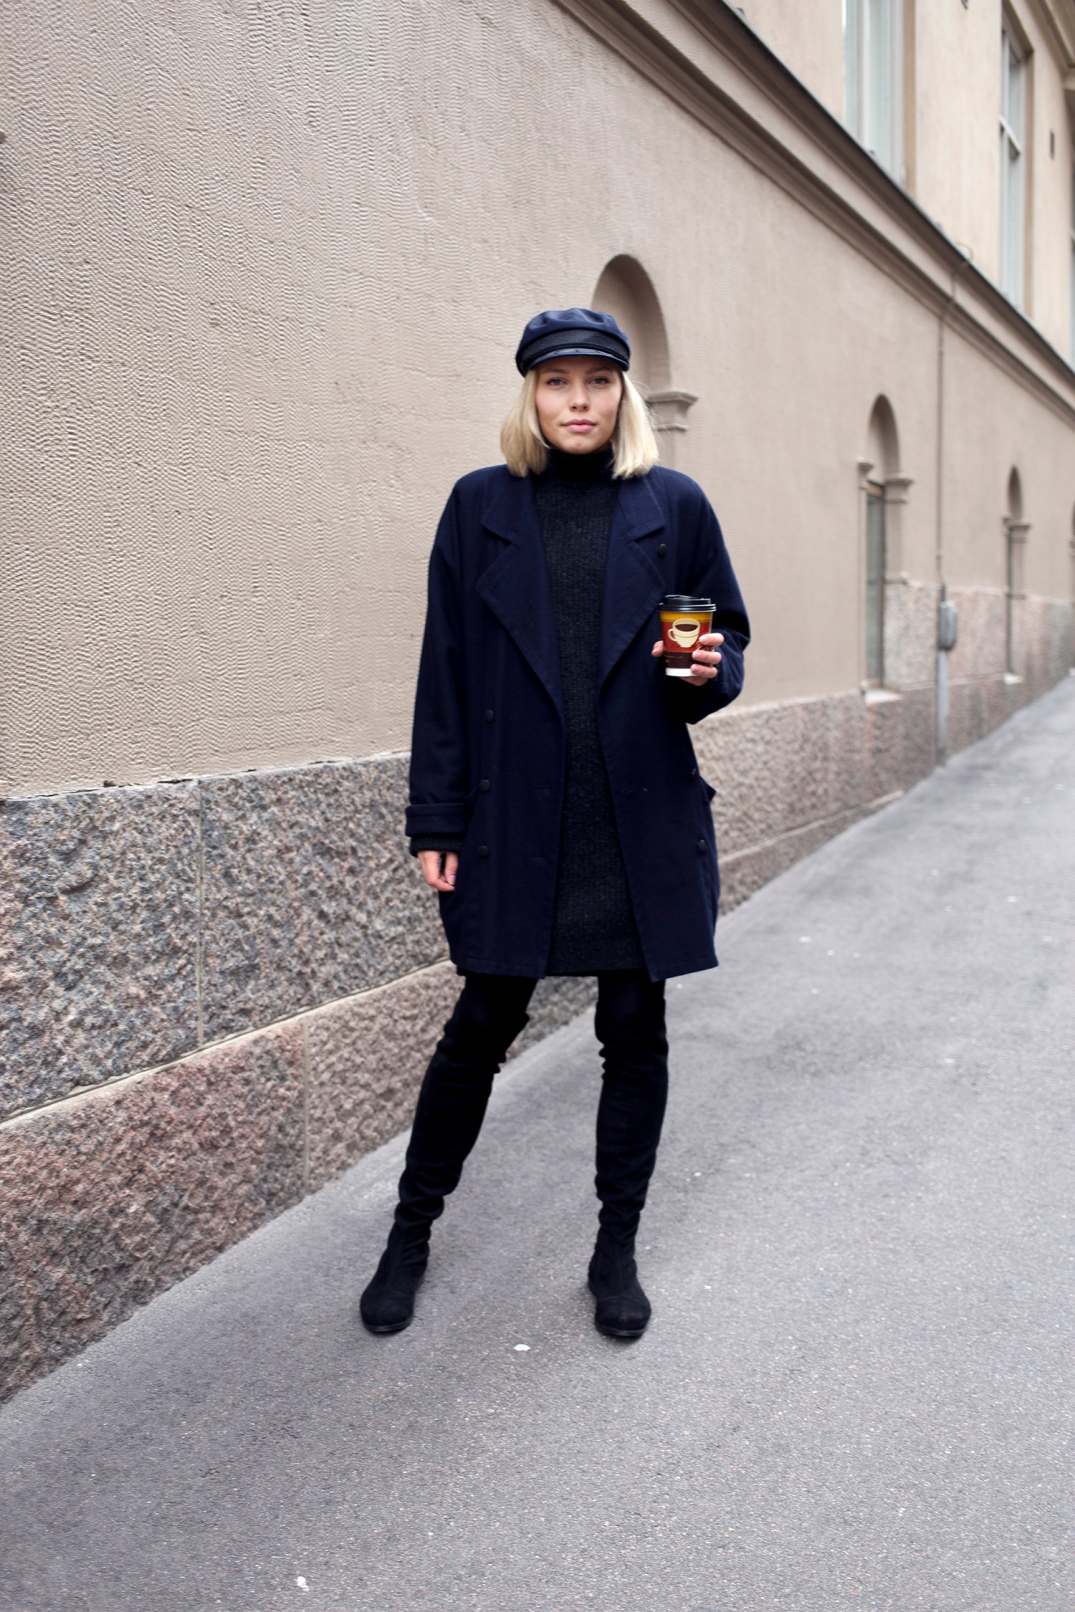 outfit_rks_20161030-cb6a5131